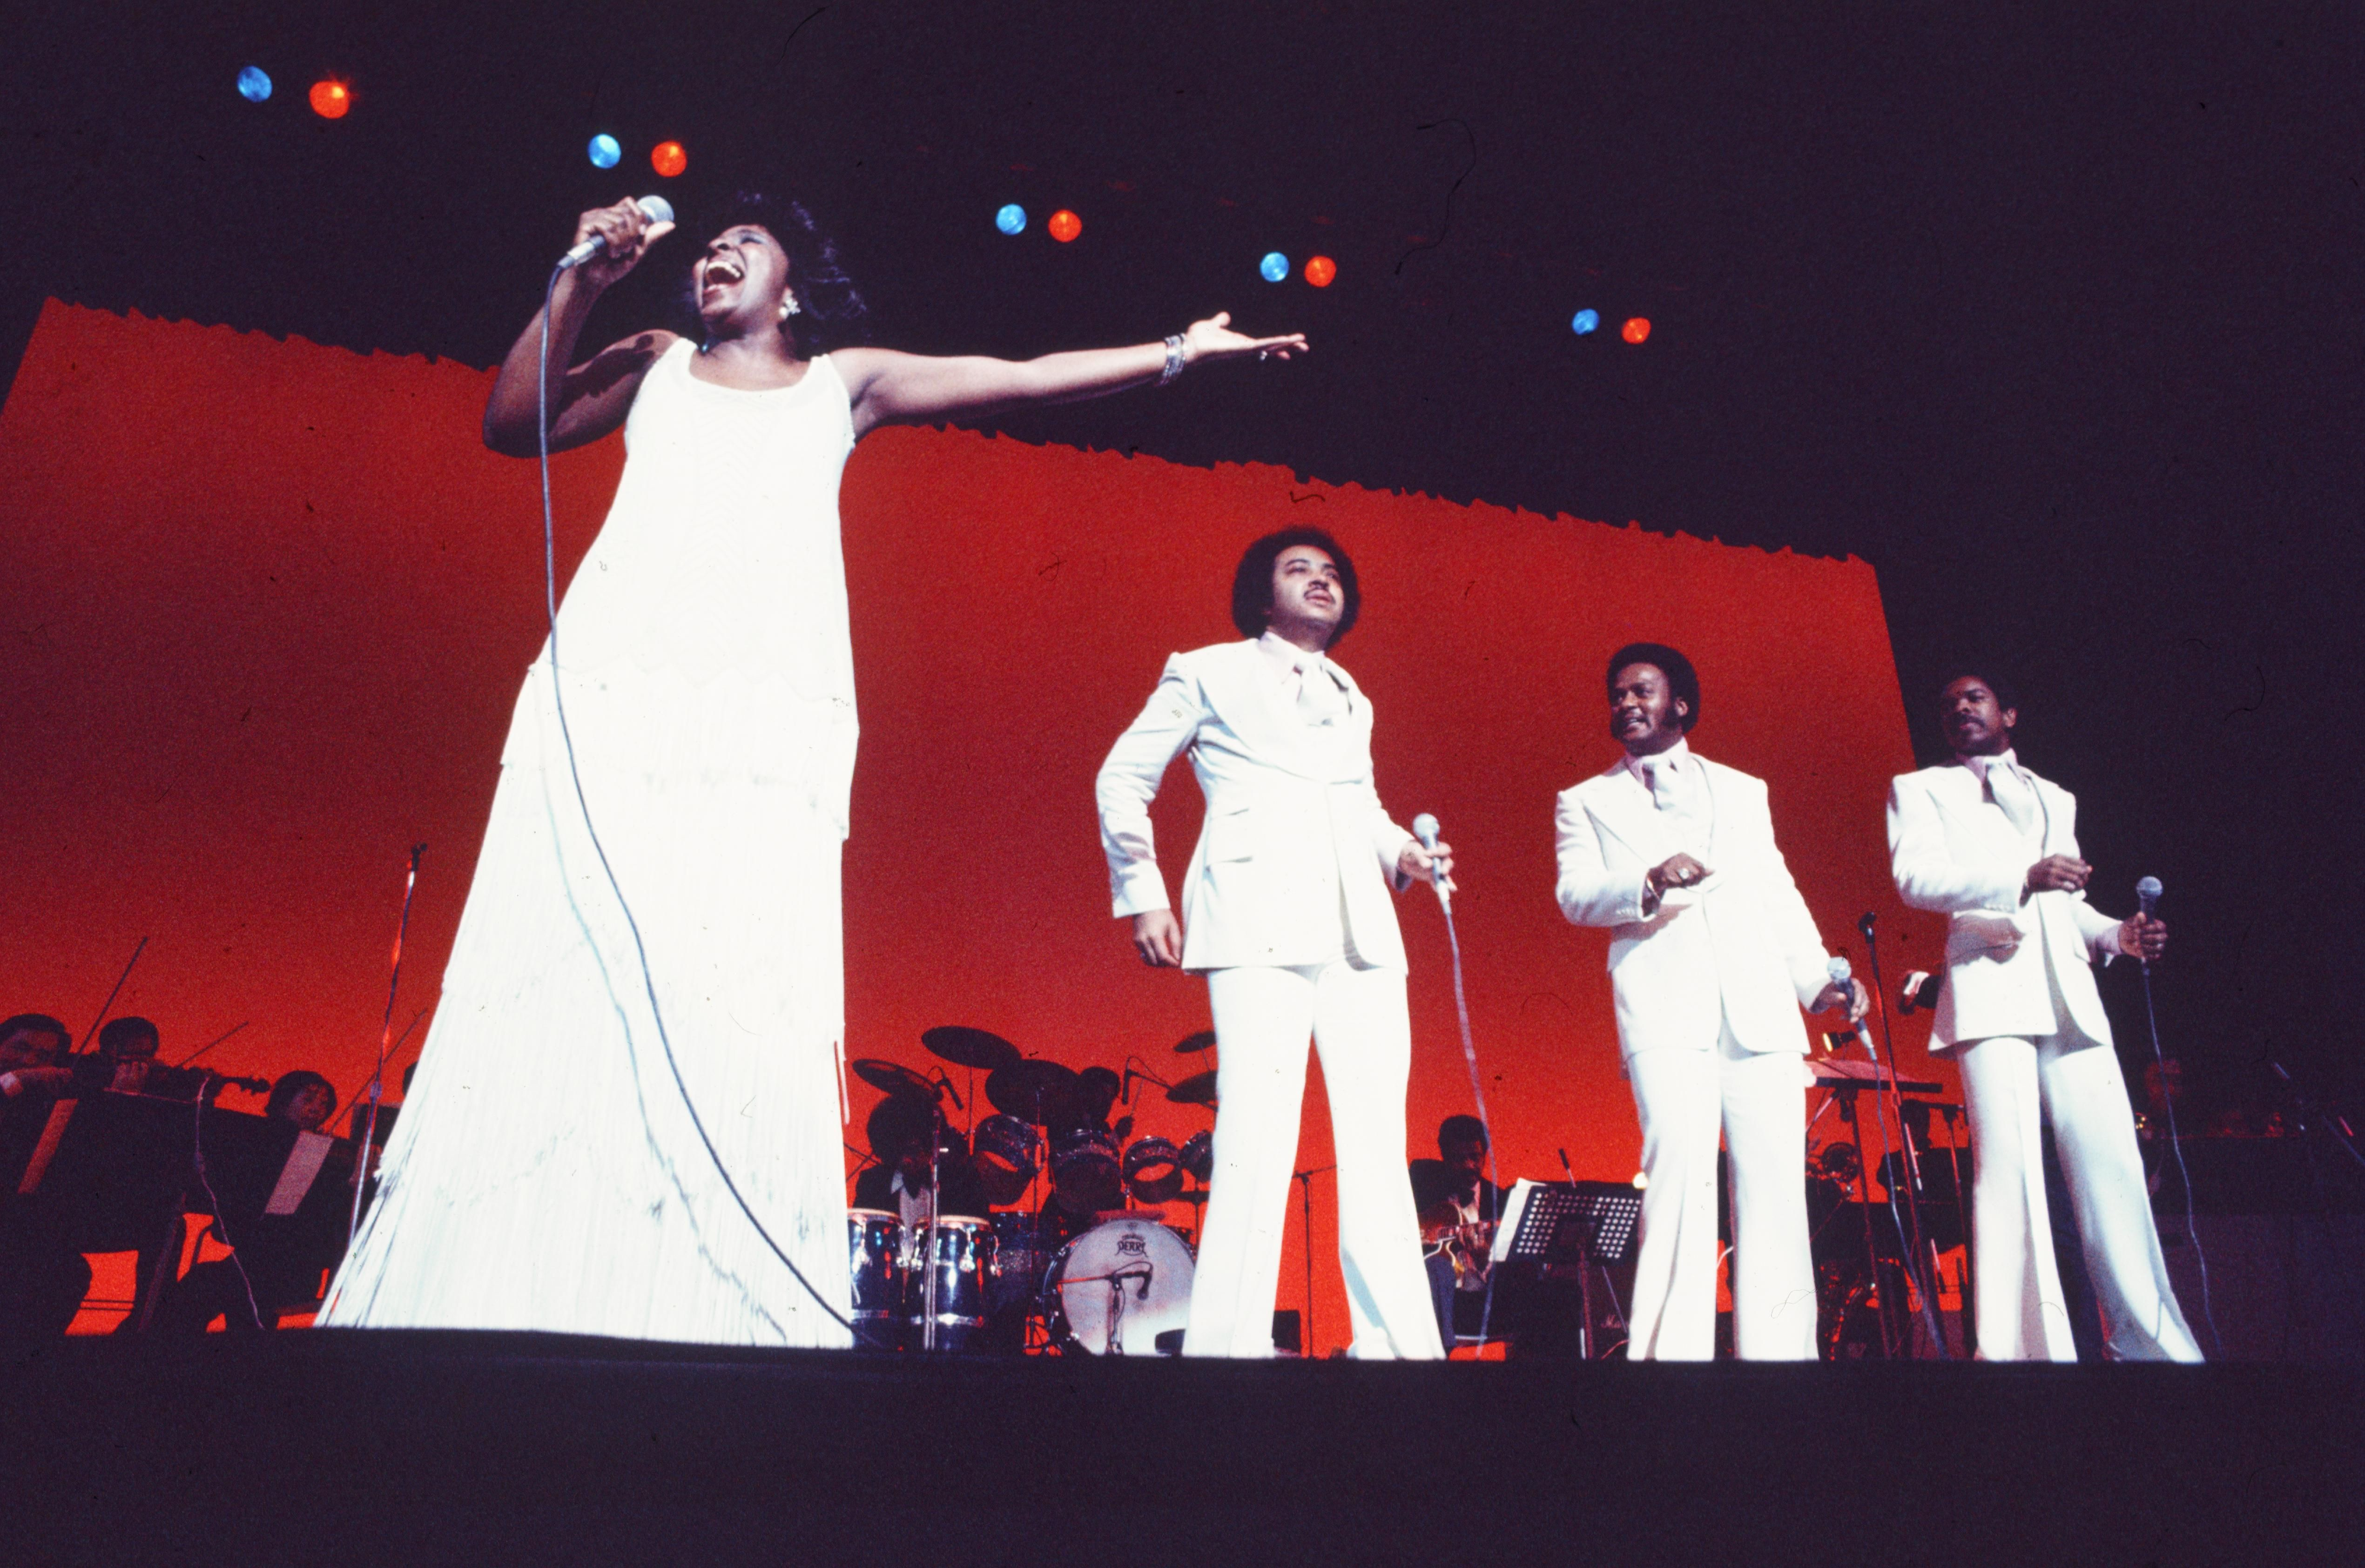 Gladys Knight on stage with the Pips in the 70s/ Source: Getty Images